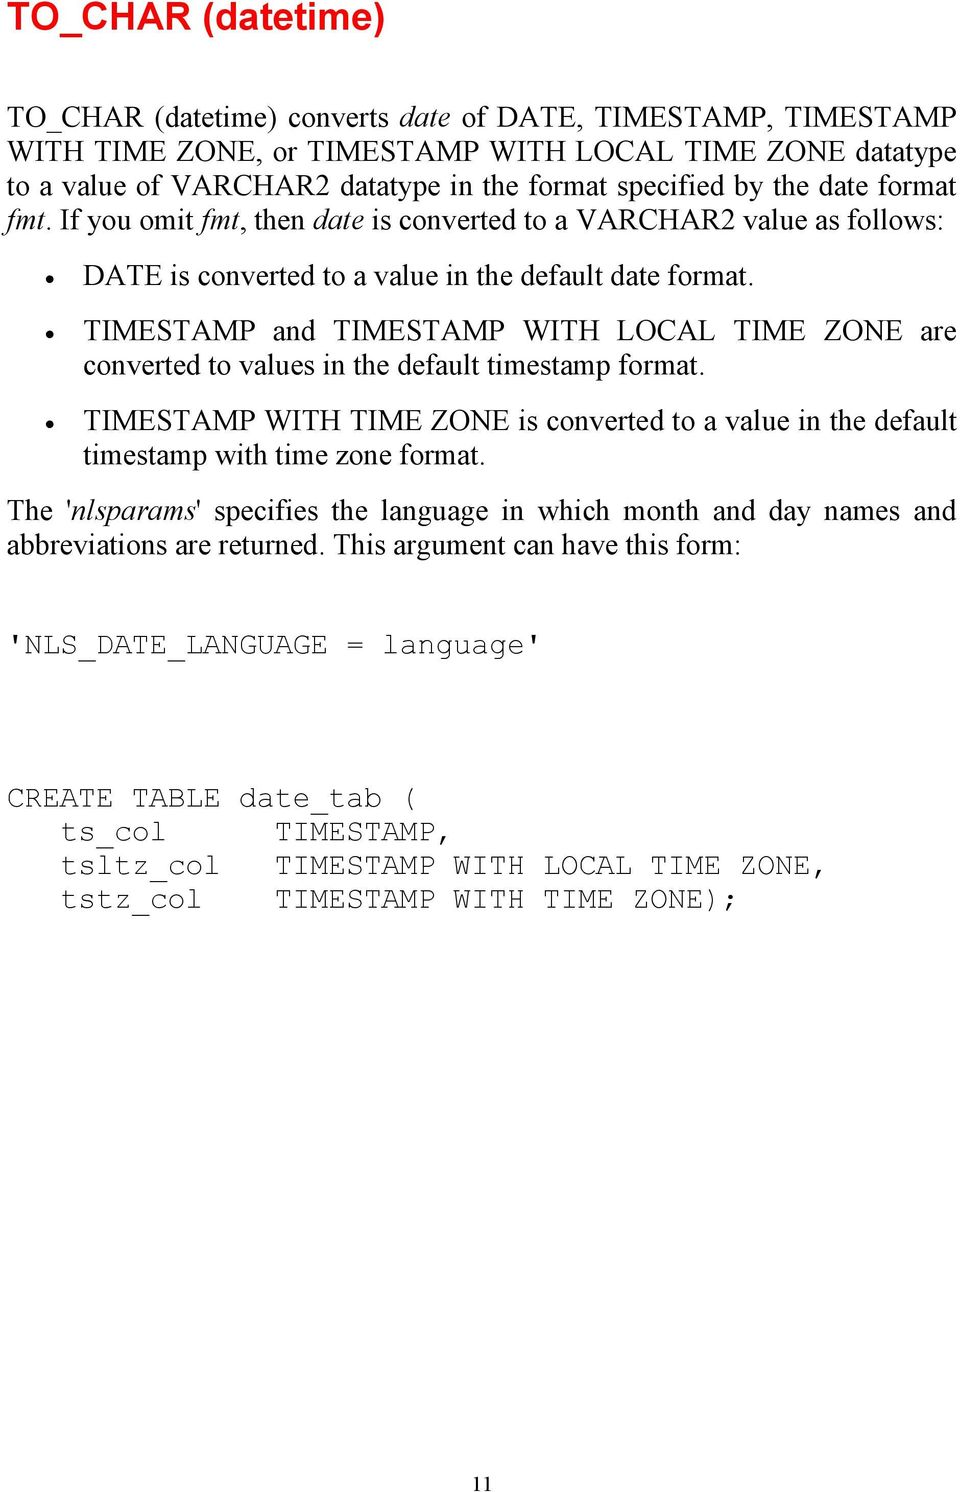 TIMESTAMP and TIMESTAMP WITH LOCAL TIME ZONE are converted to values in the default timestamp format. TIMESTAMP WITH TIME ZONE is converted to a value in the default timestamp with time zone format.